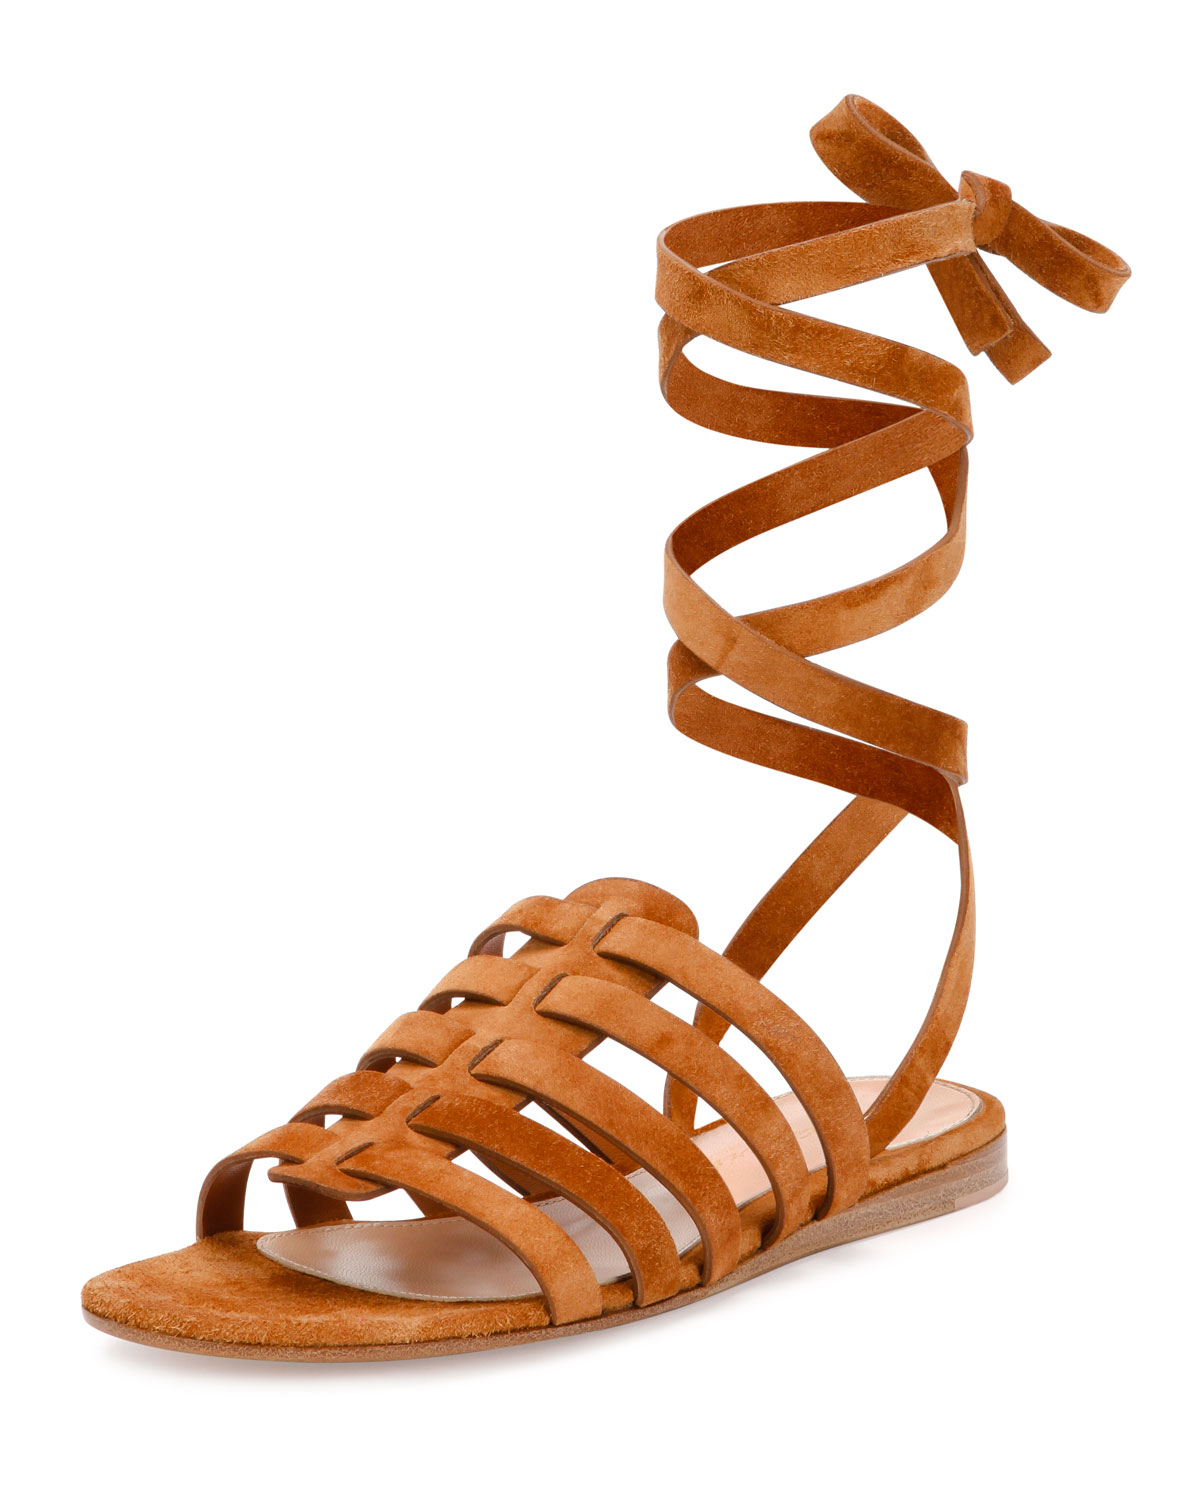 Suede Ankle-Wrap Gladiator Sandal, Luggage, Size: 35.0B/5.0B - Gianvito Rossi